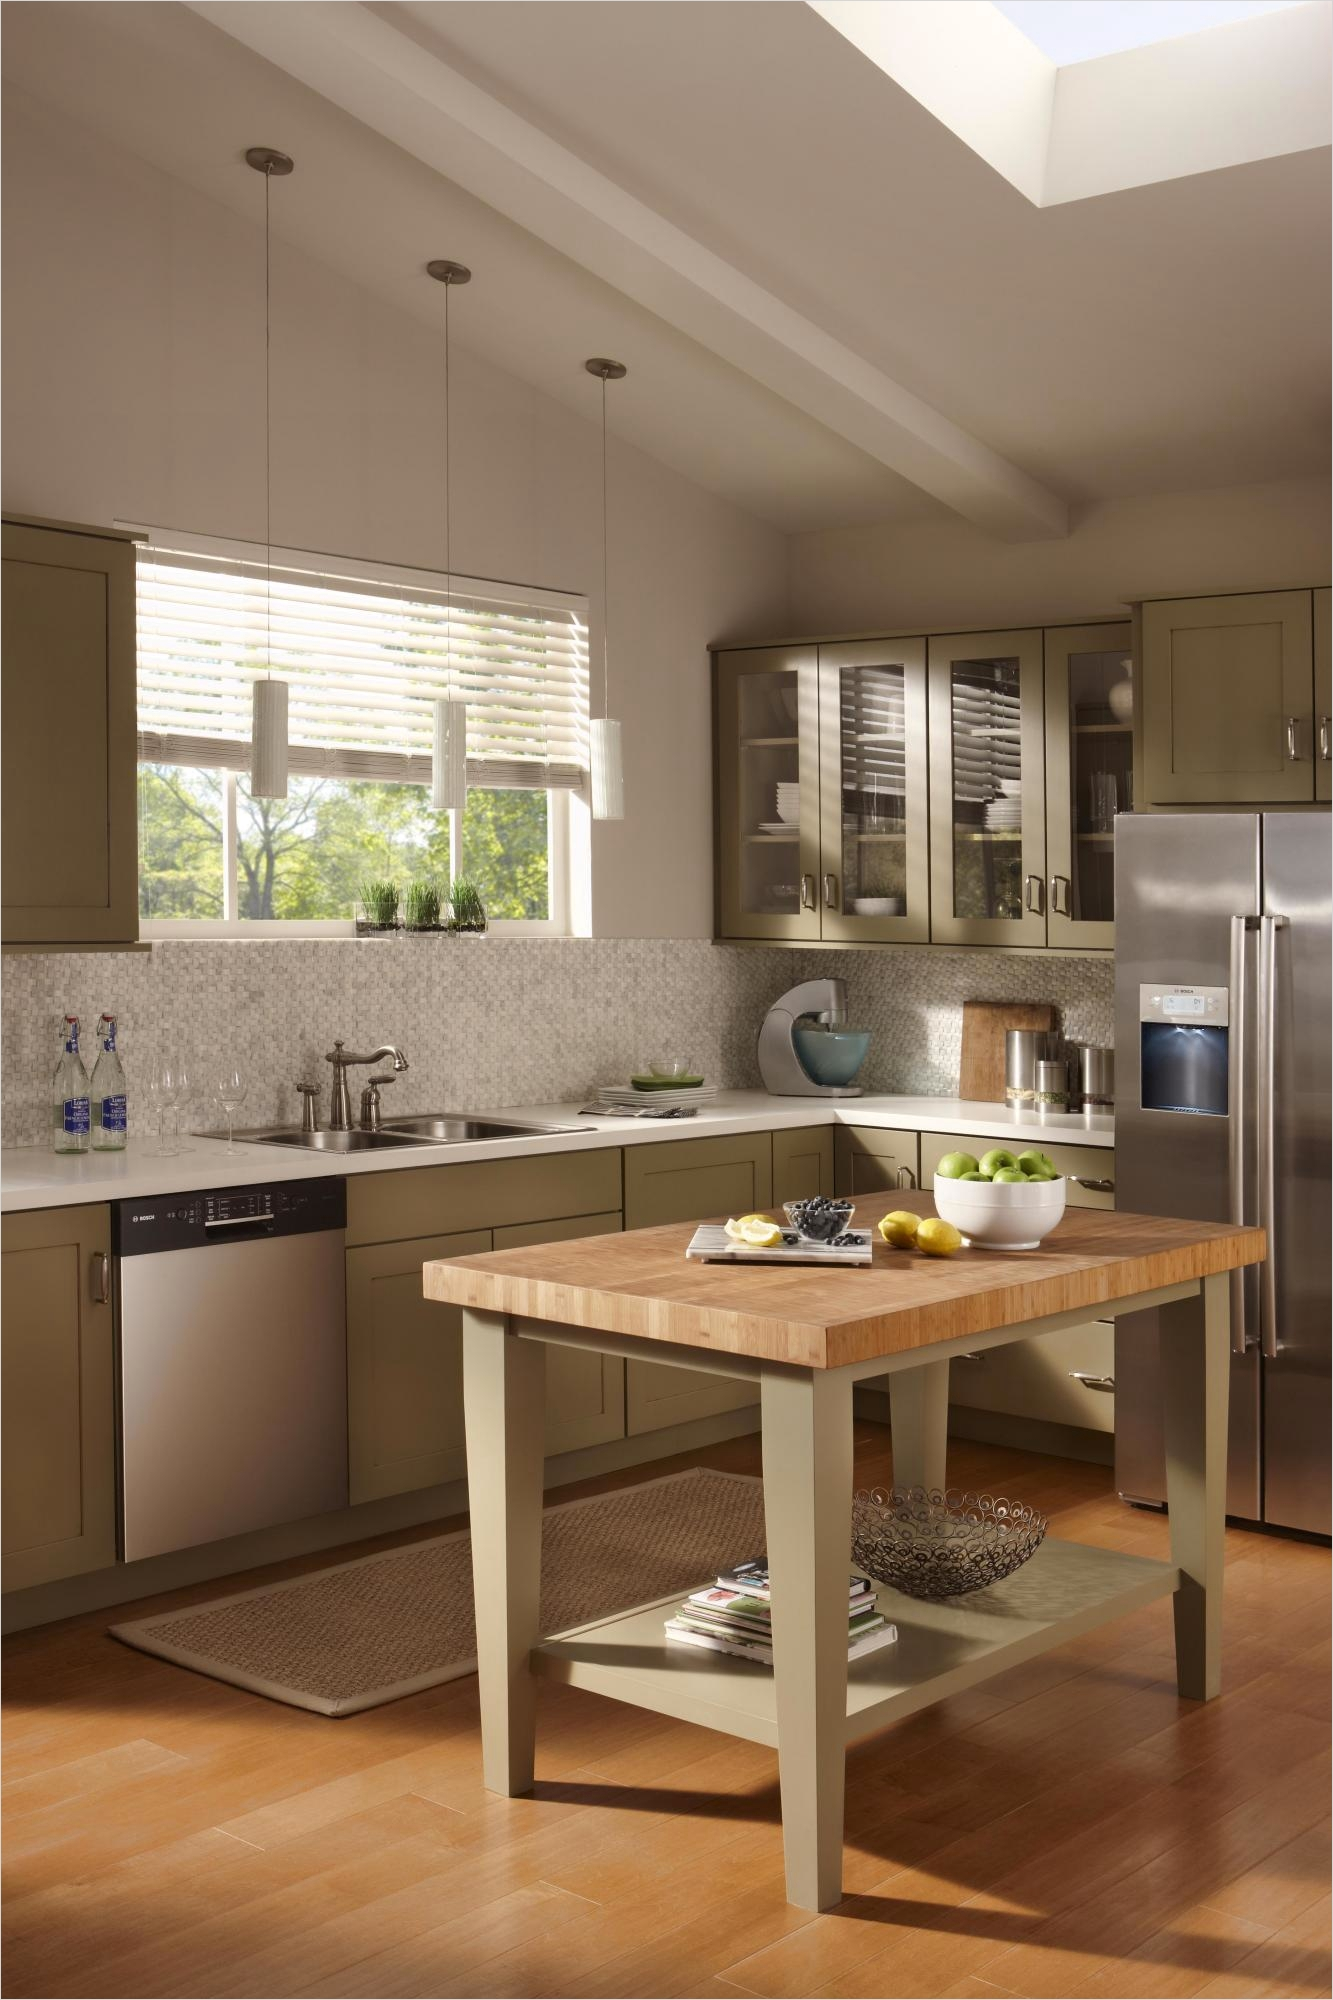 44 Perfect Ideas Small Kitchen Designs with islands 86 Fabulous Small Kitchen island Design Kitchen Segomego Home Designs 8